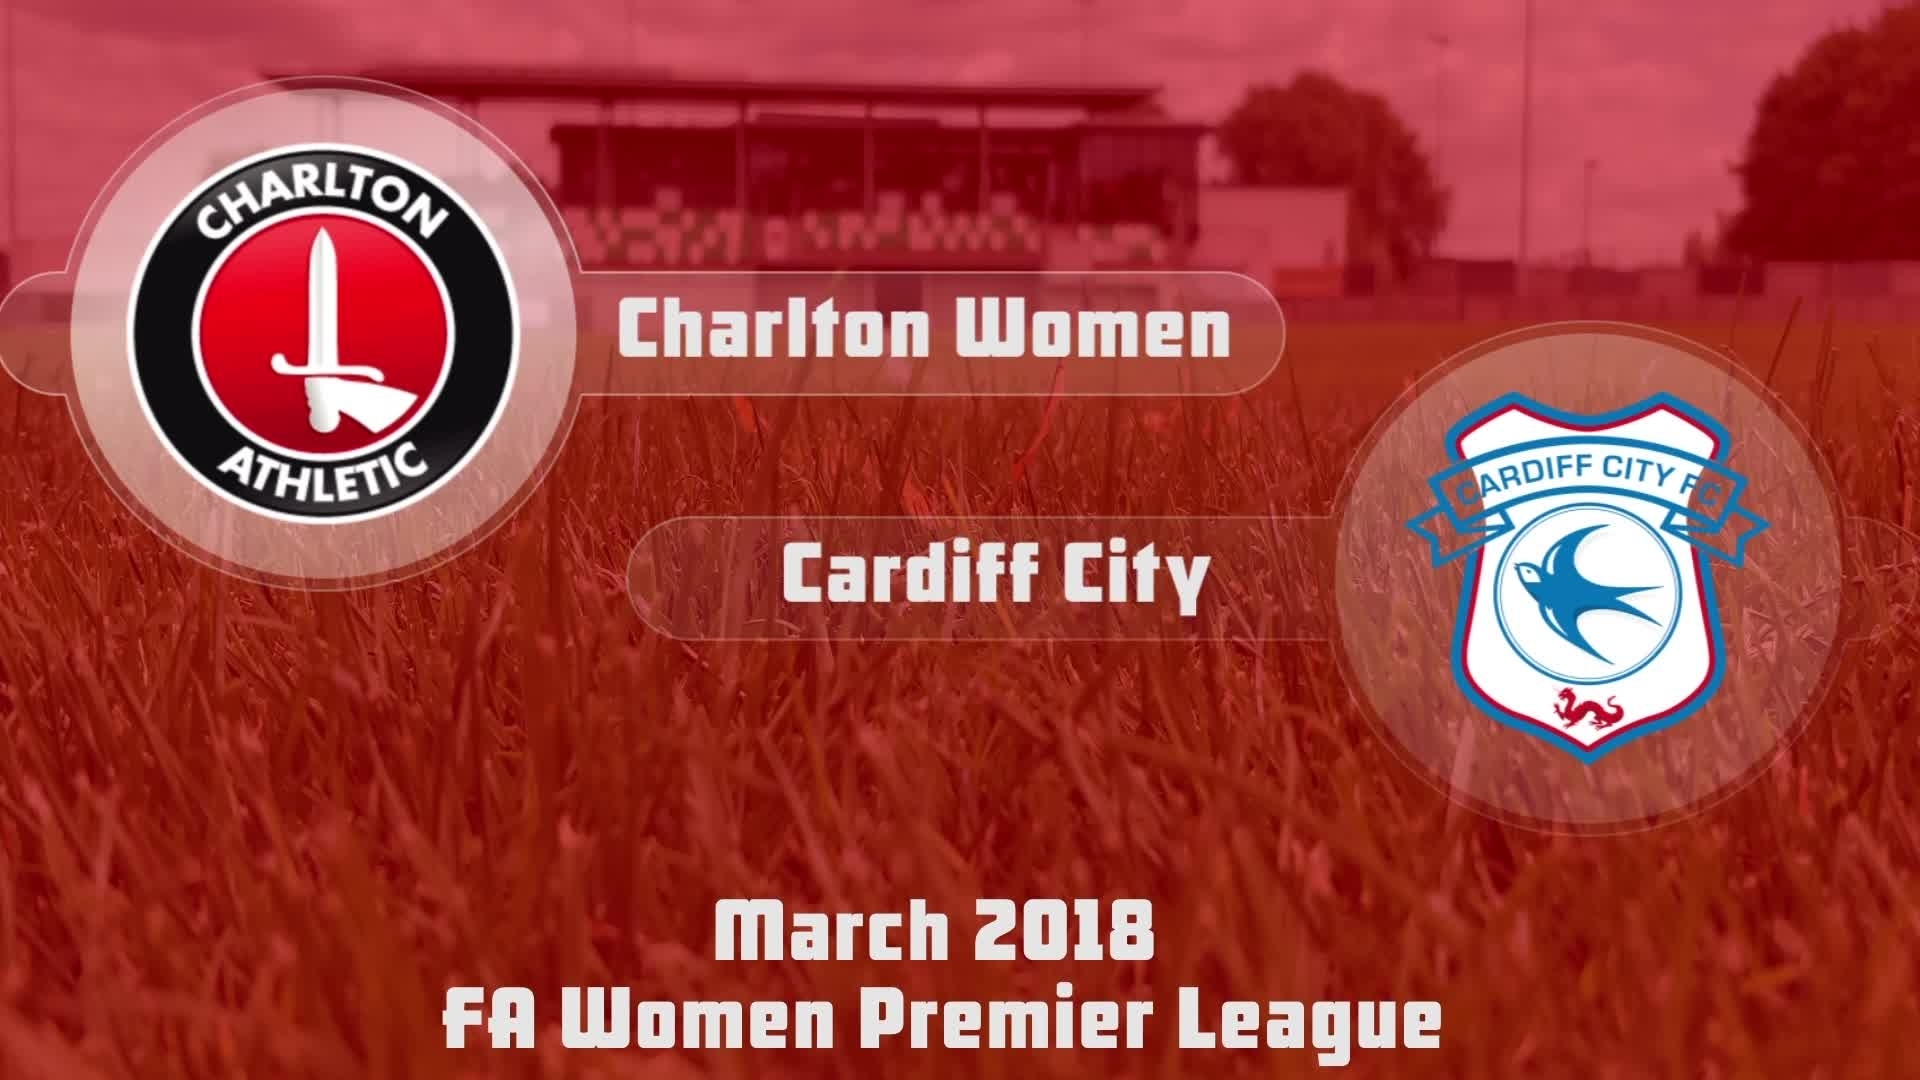 WOMENS HIGHLIGHTS | Charlton 5 Cardiff 1 (Mar 2018)